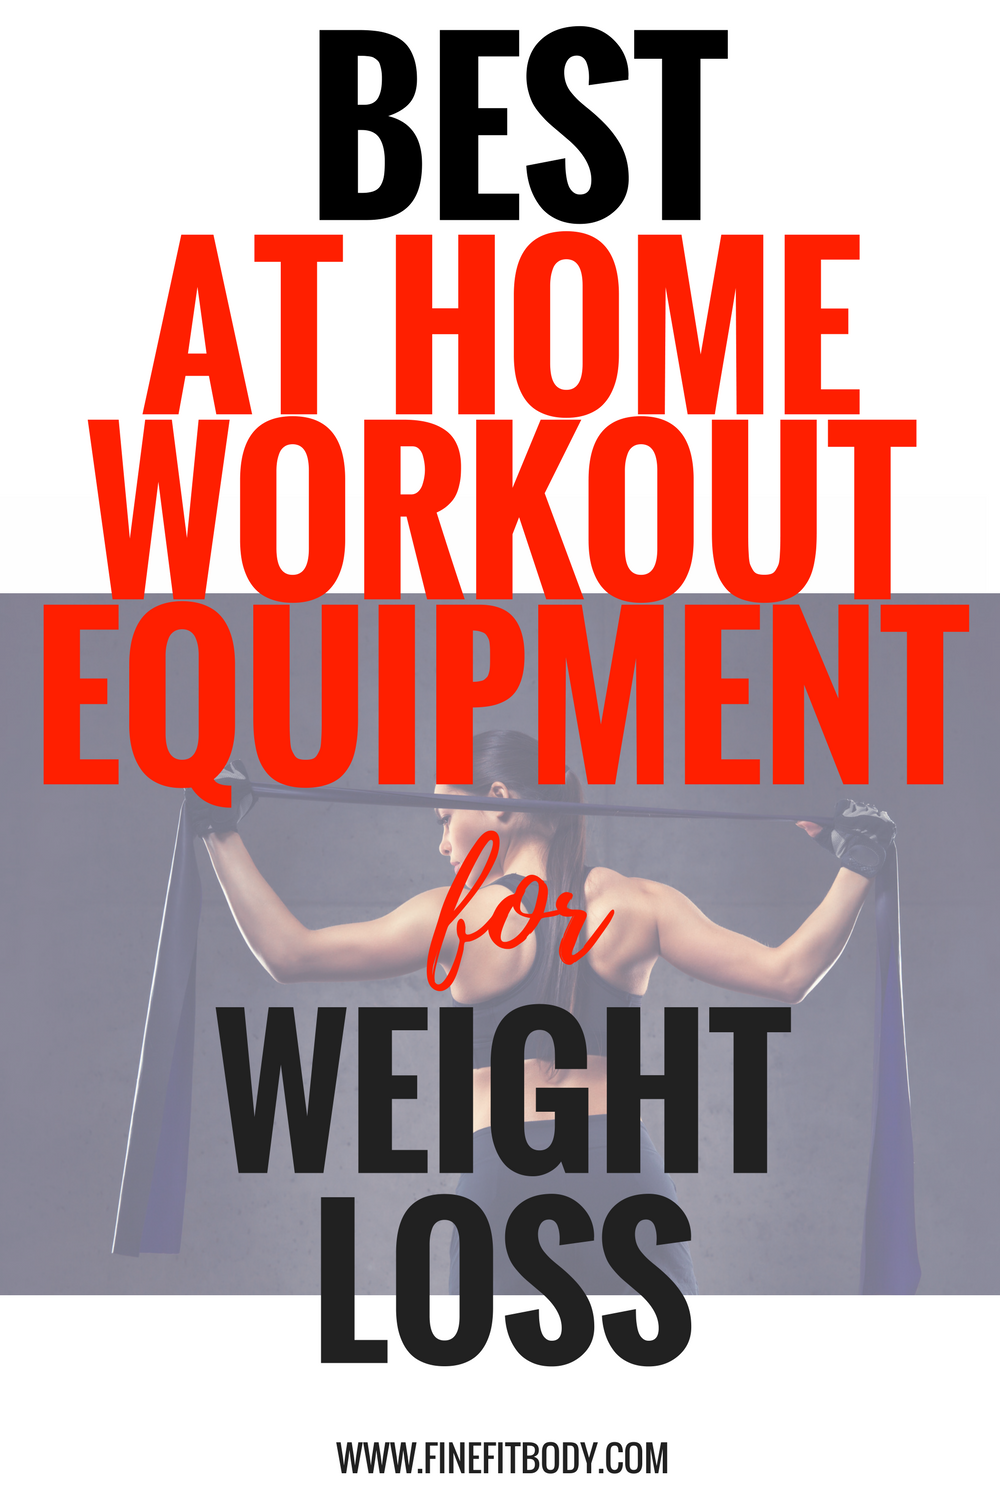 Wow these are great at home workout tips that only use workout equipment for home! This will help me lose weight in a week!